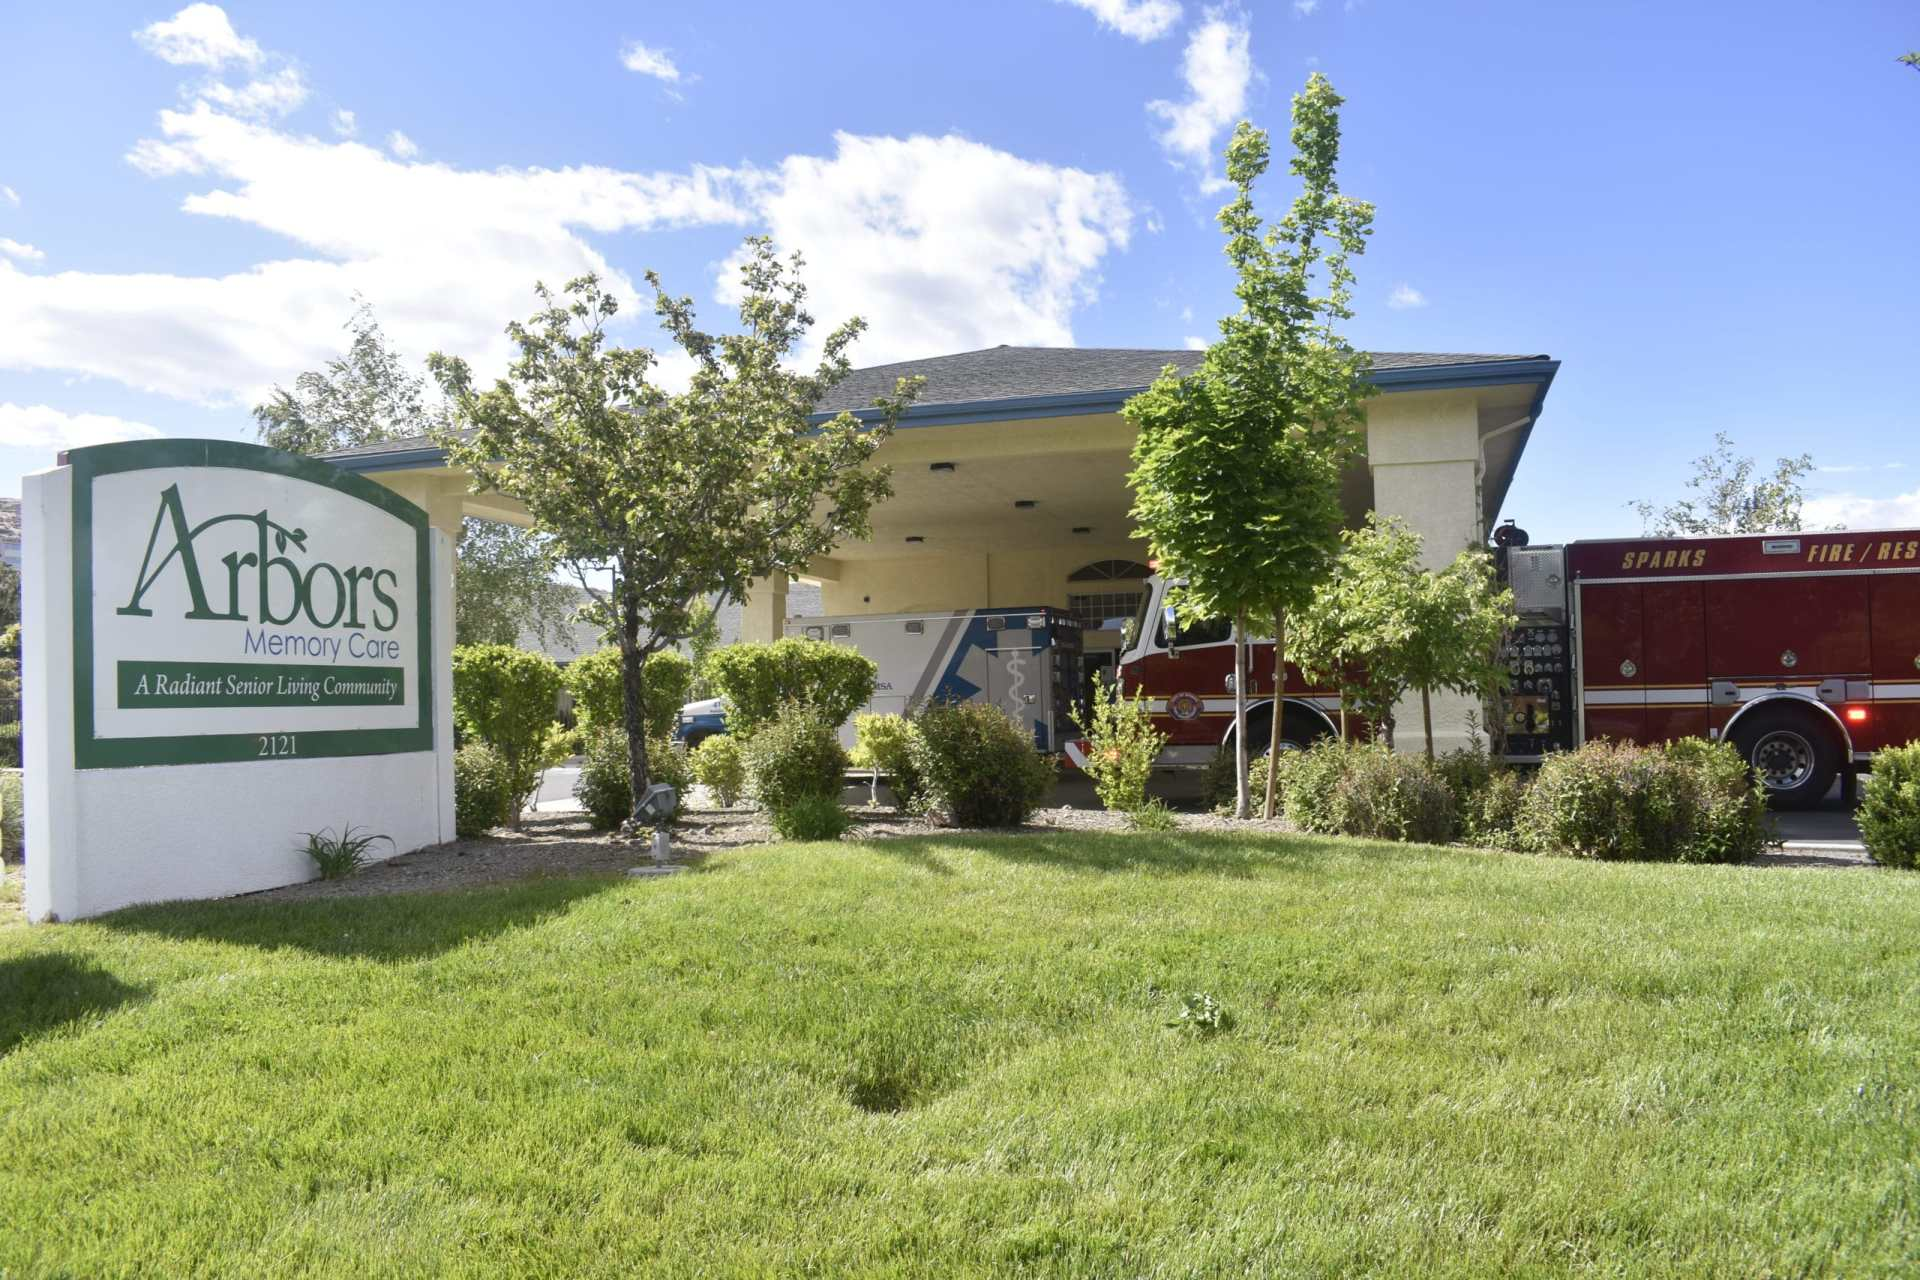 Arbors Memory Care facility in Sparks, Nev.